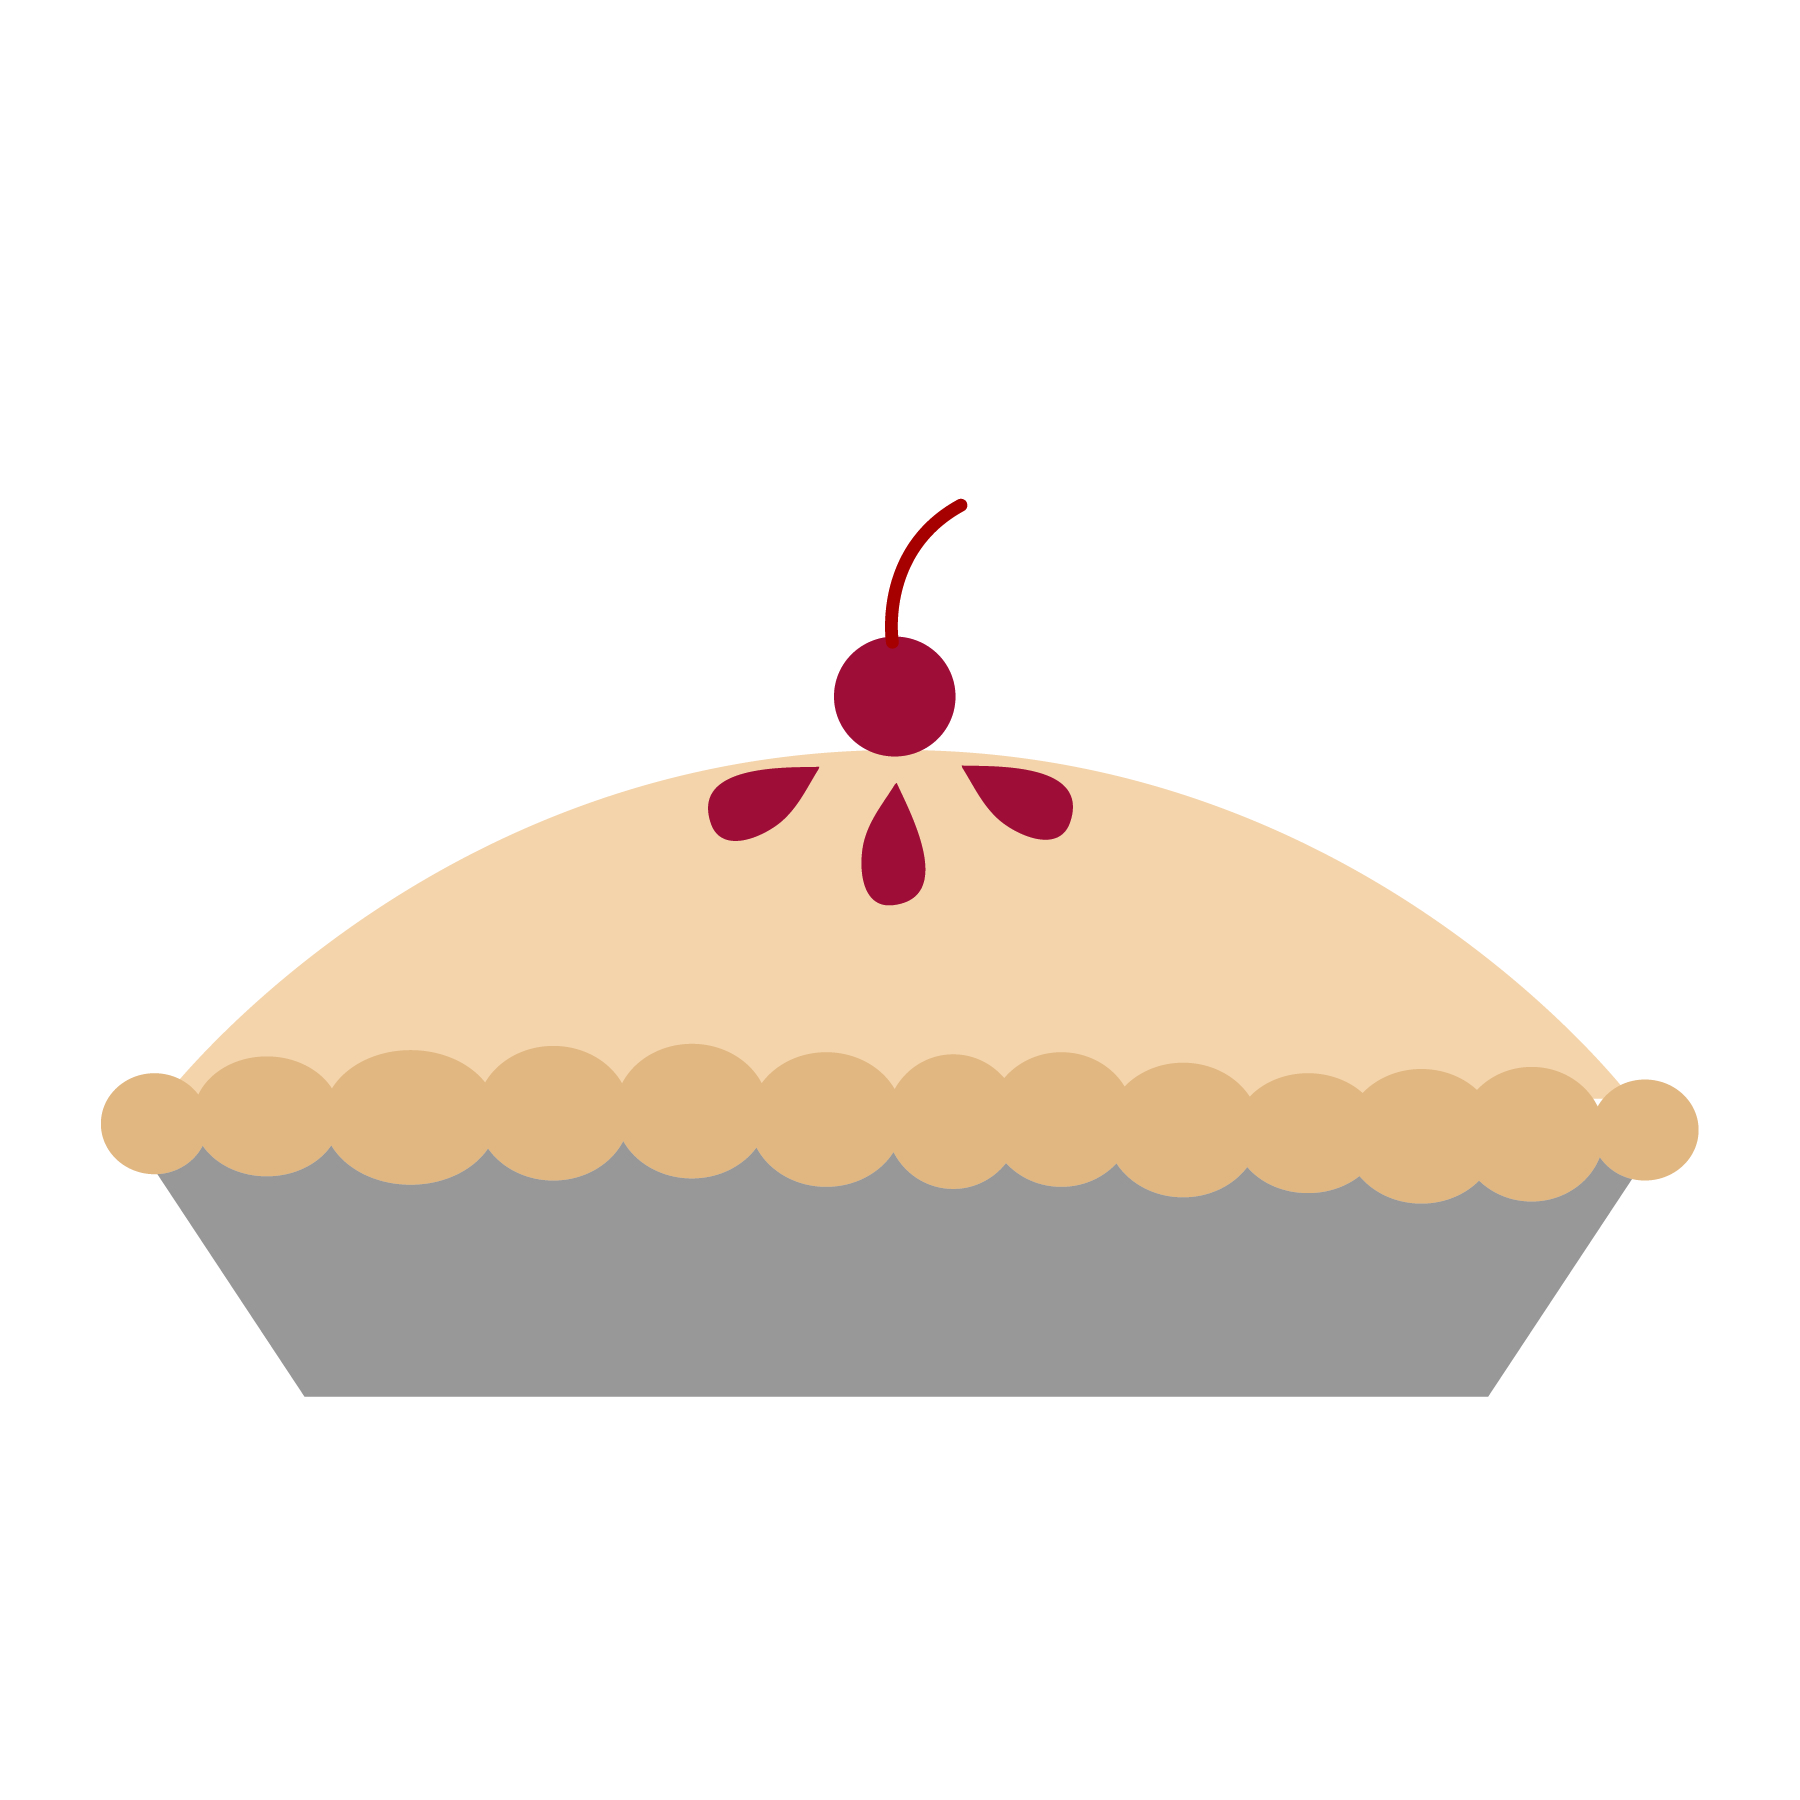 Pies clipart bake sale Bake Successful for Hosting a